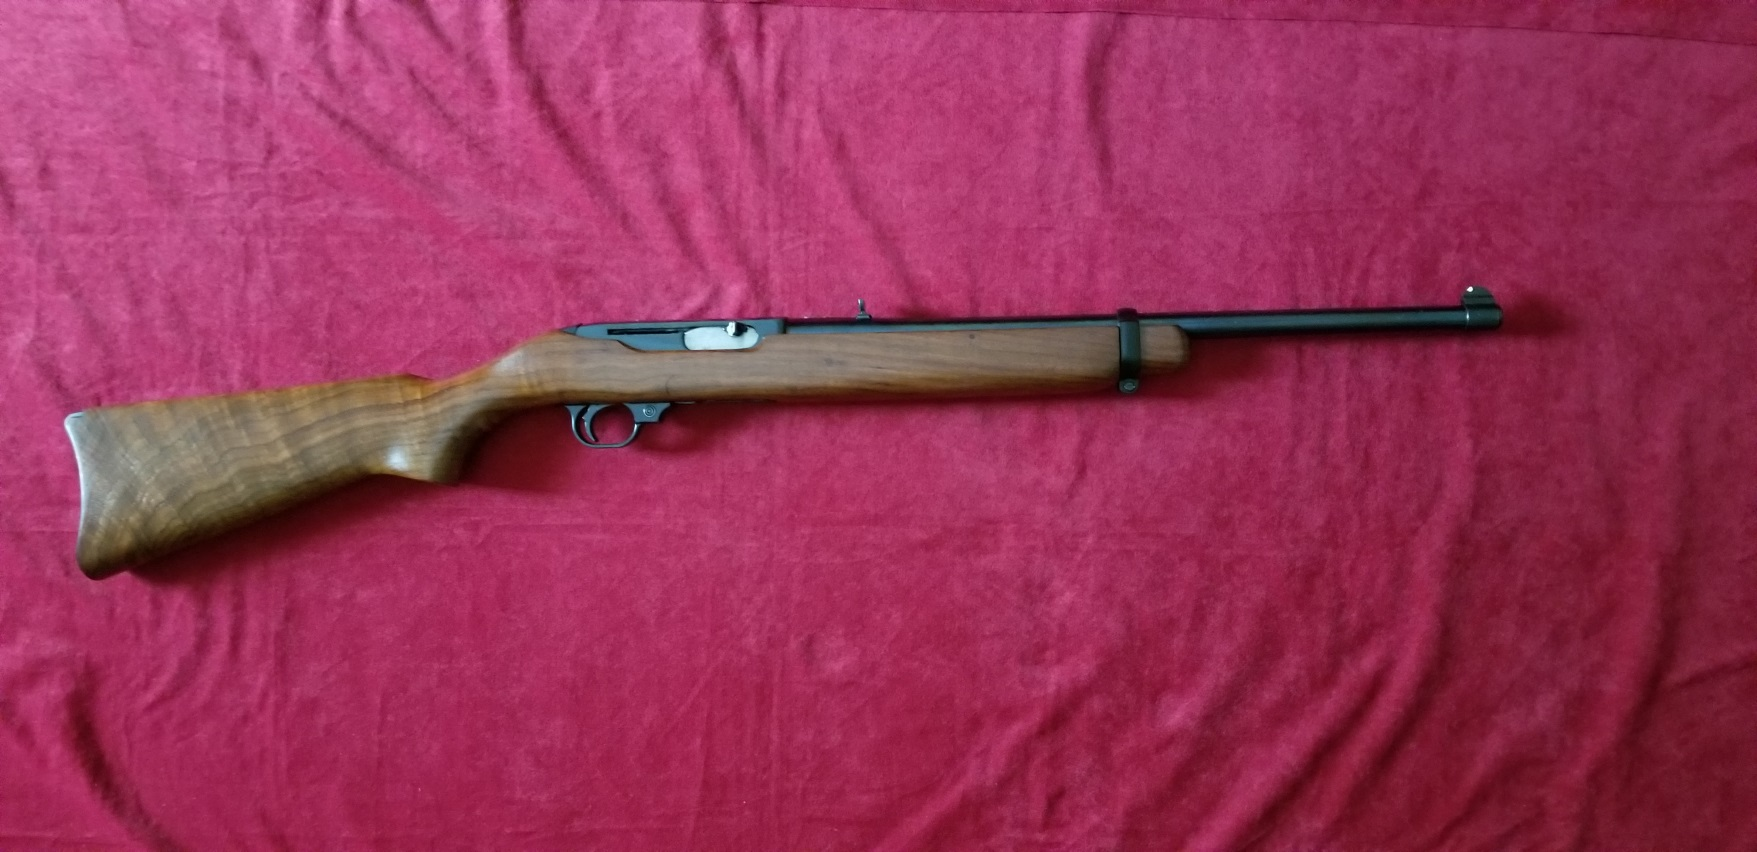 .44 Magnum Deerstalker carbine 3175. Courtesy Bill Hamm